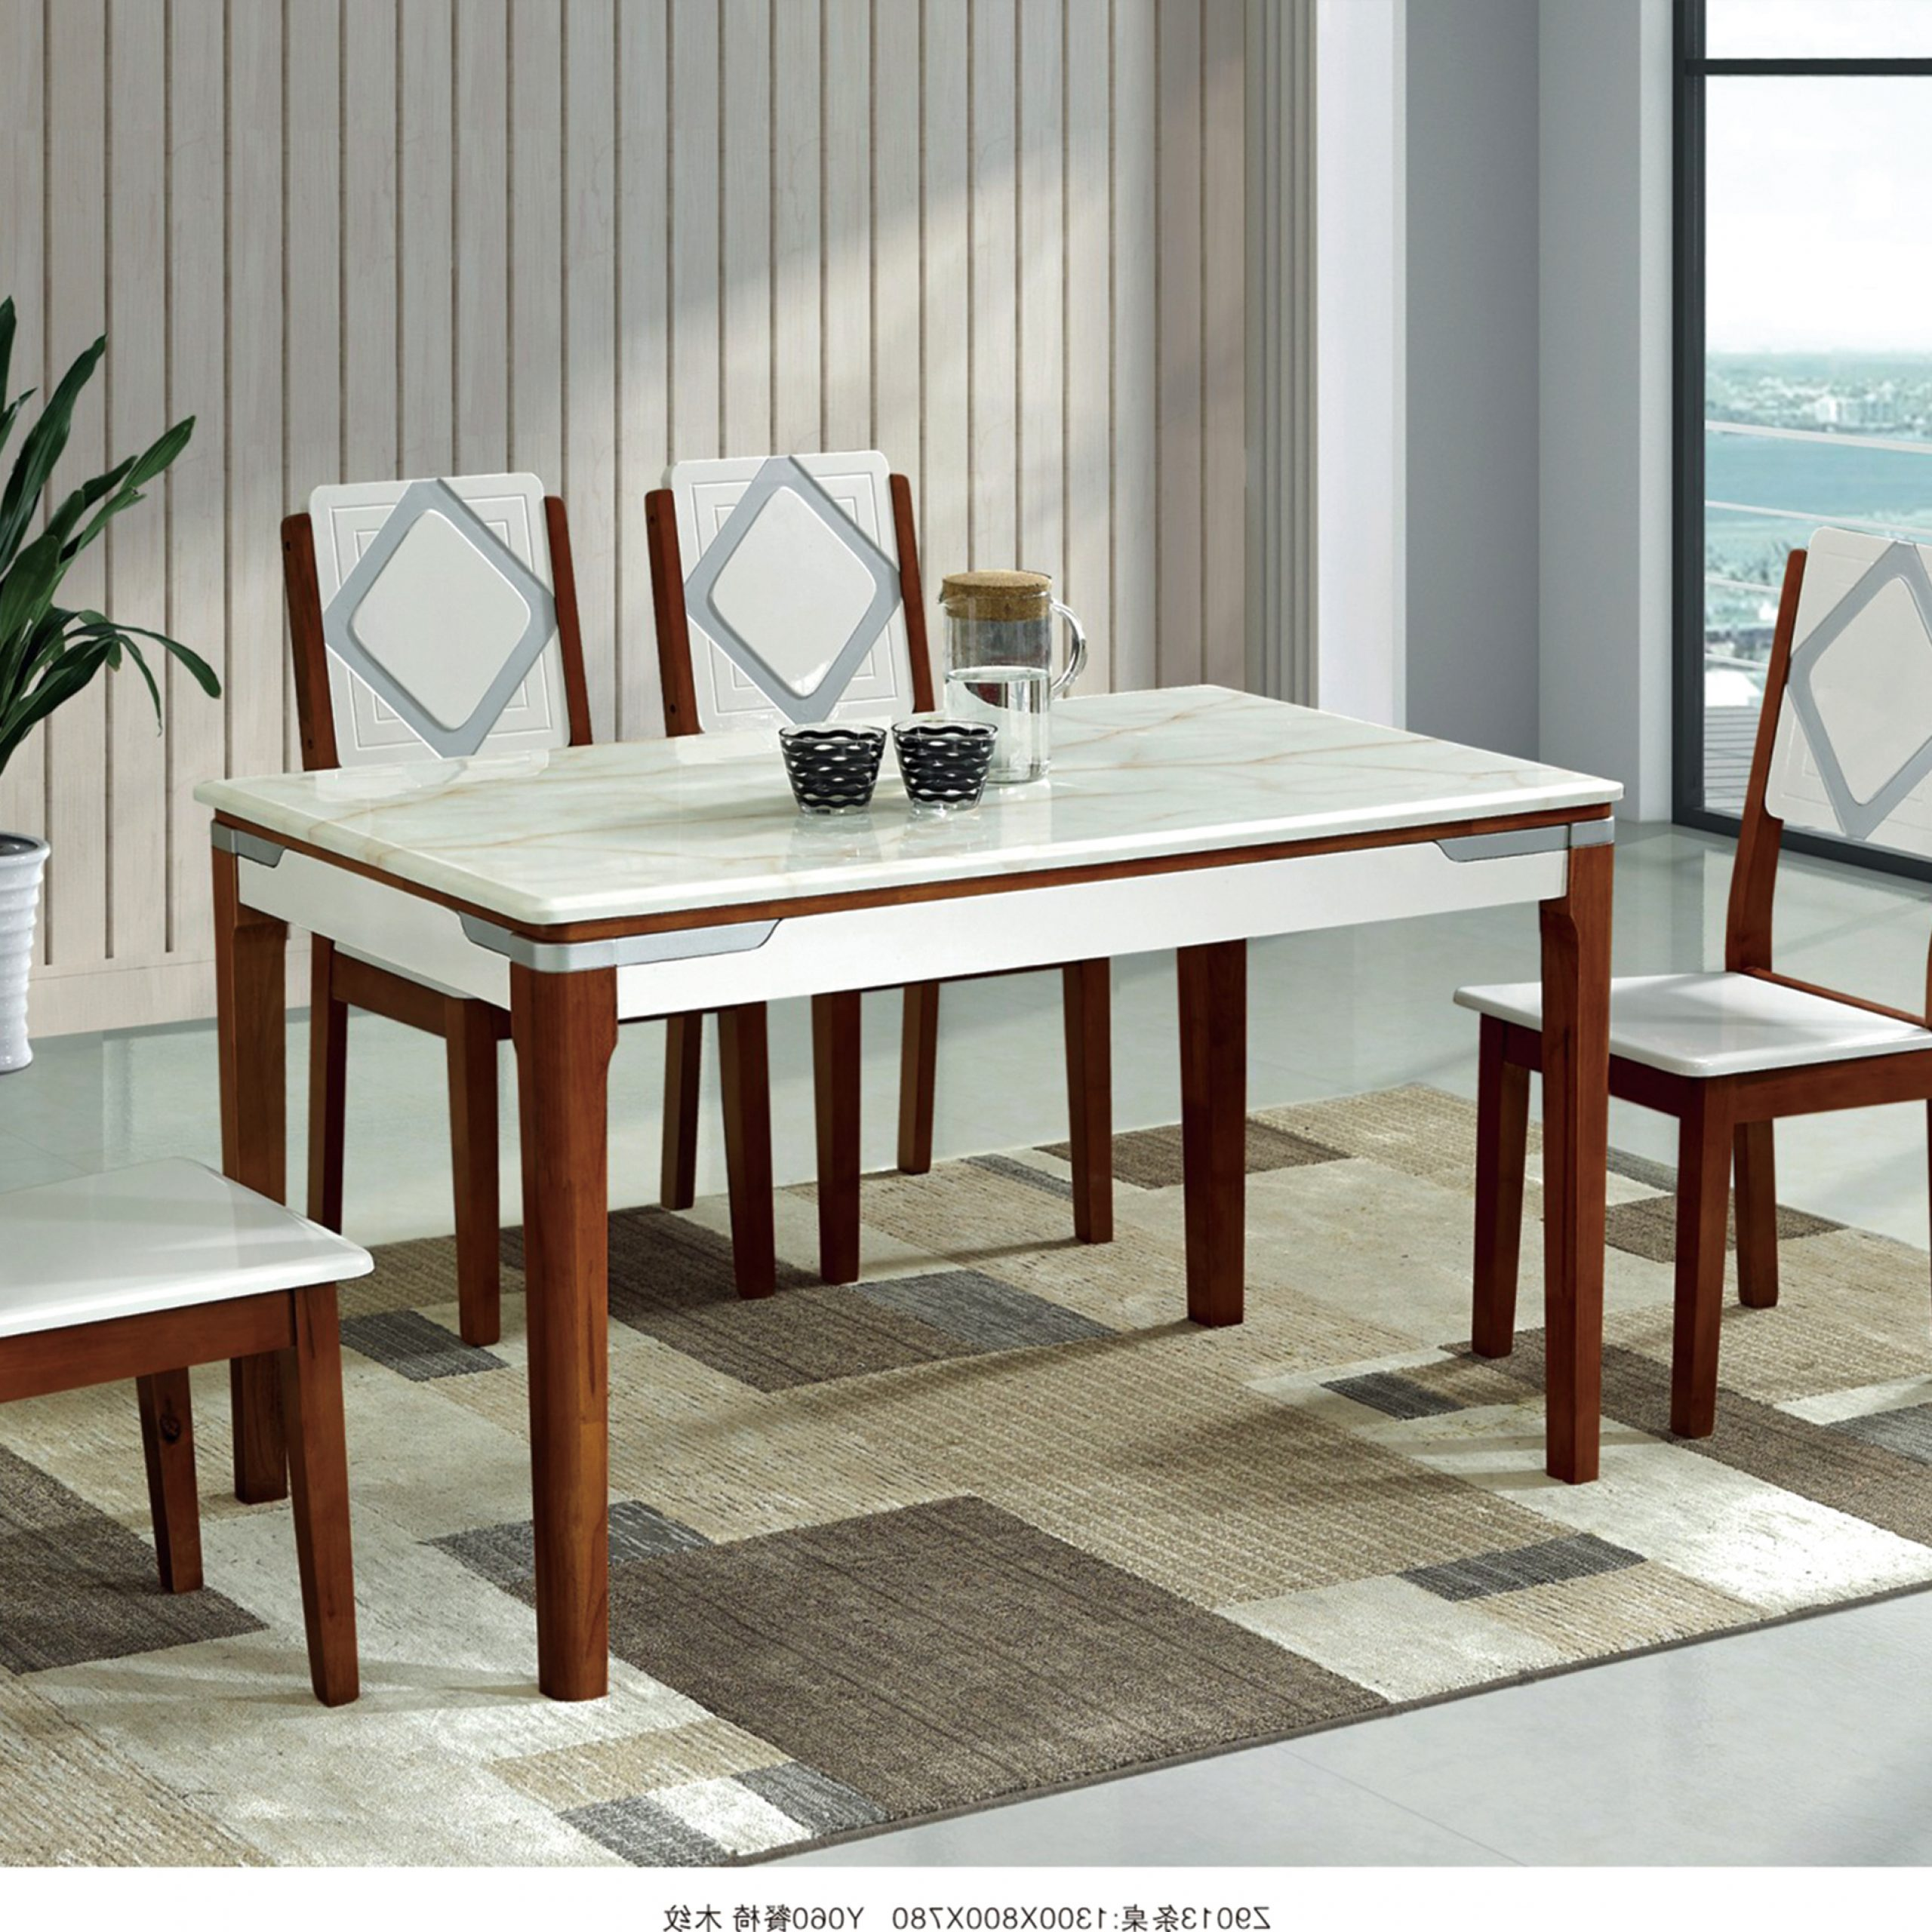 Widely Used Home Furniture White Marble Top Dining Table(bf153) Within Dining Tables With White Marble Top (View 30 of 30)